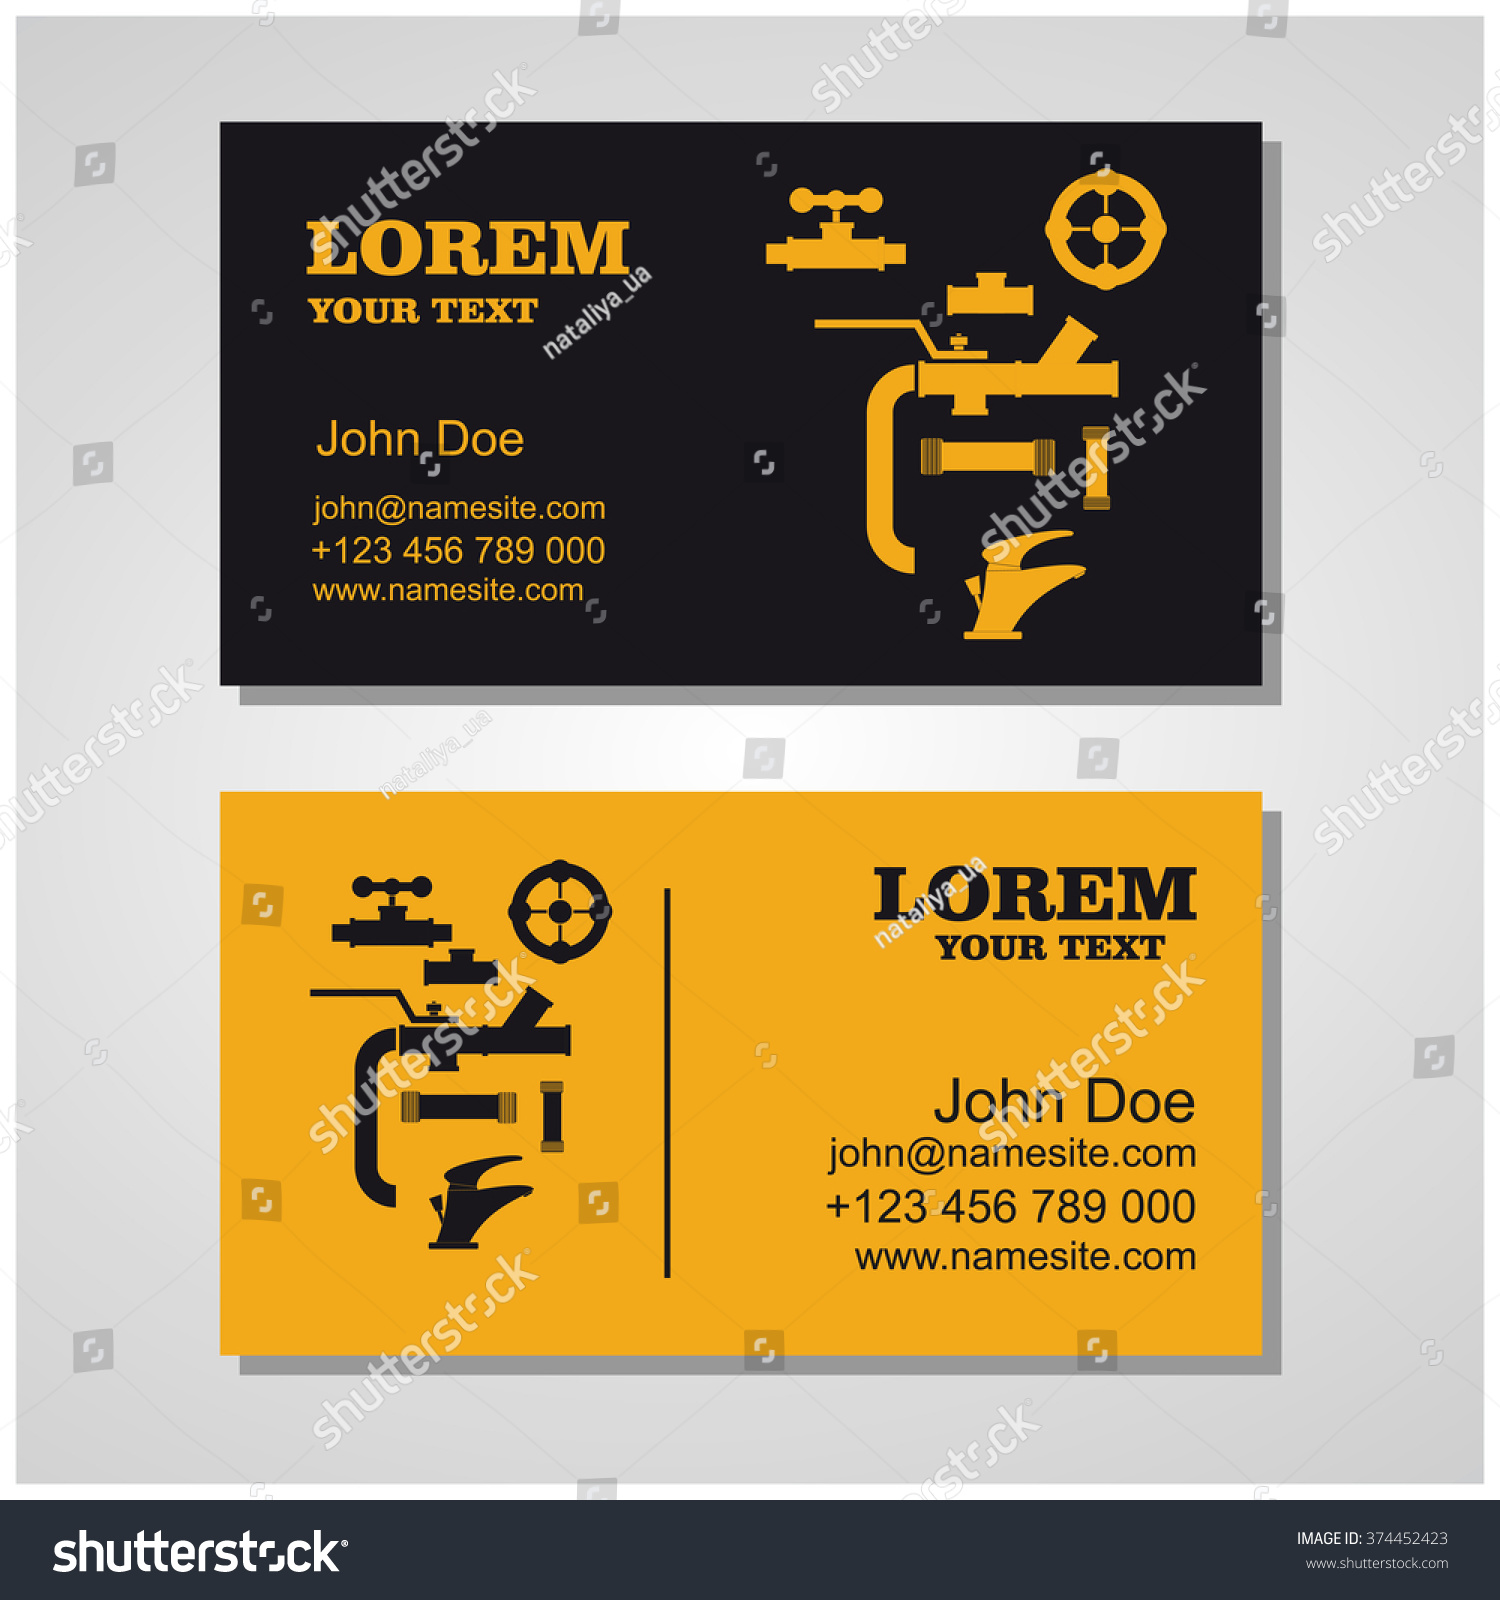 Plumbing Business Card Gallery - Free Business Cards